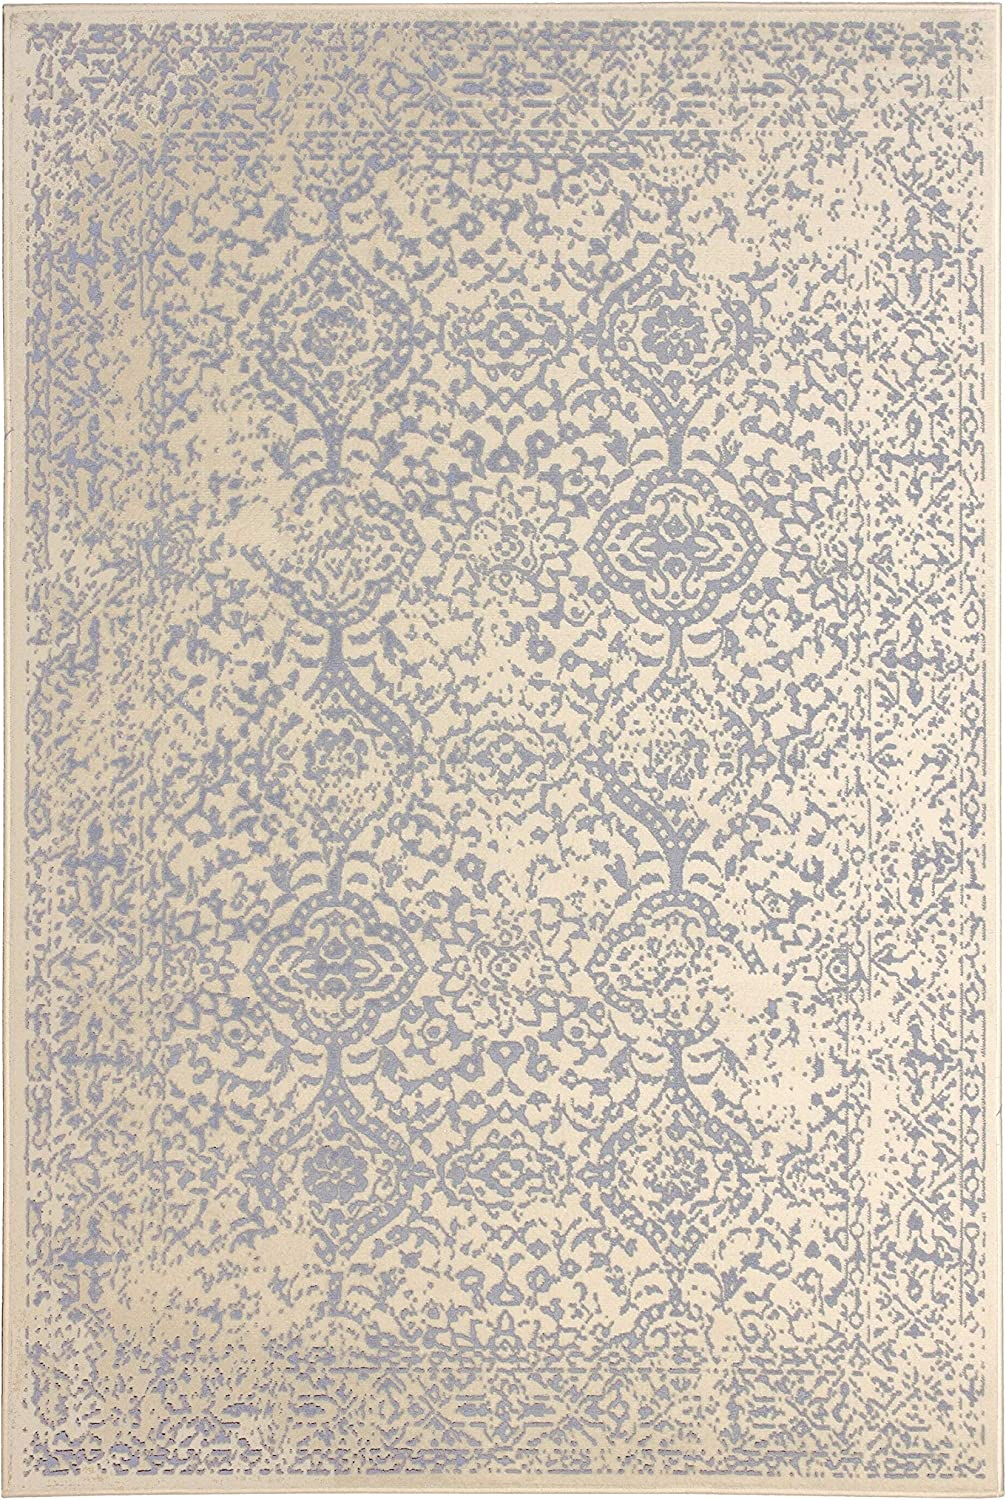 MISC Home Cream 8'x10' Rug - 10' Tradition Price reduction 8' White Oriental X Time sale